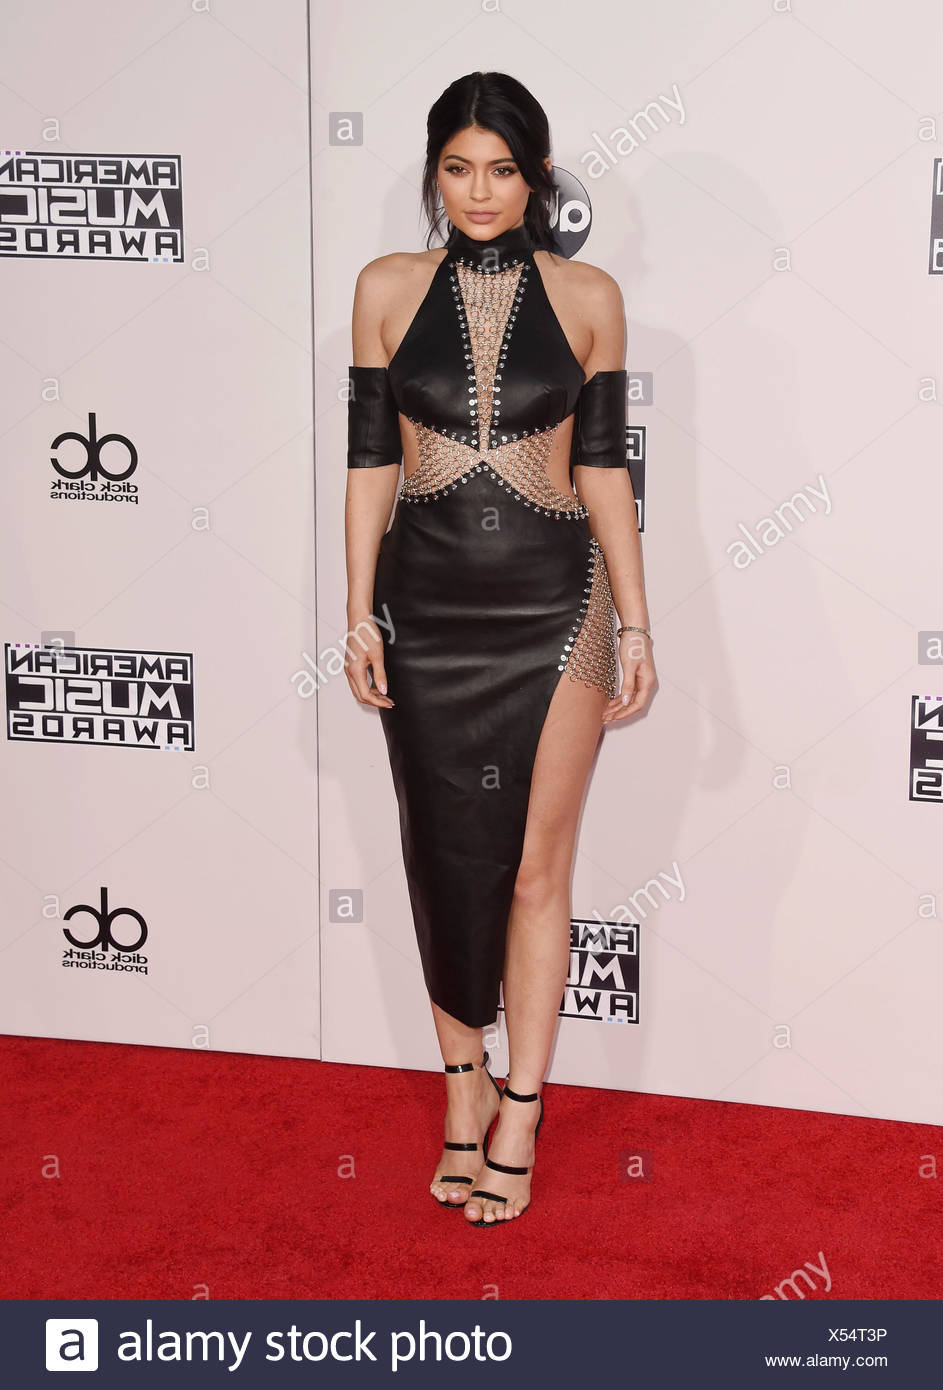 TV personality Kylie Jenner arrives at the 2015 American Music Awards at Microsoft Theater on November 22, 2015 in Los Angeles, California., Additional-Rights-Clearances-NA - Stock Image